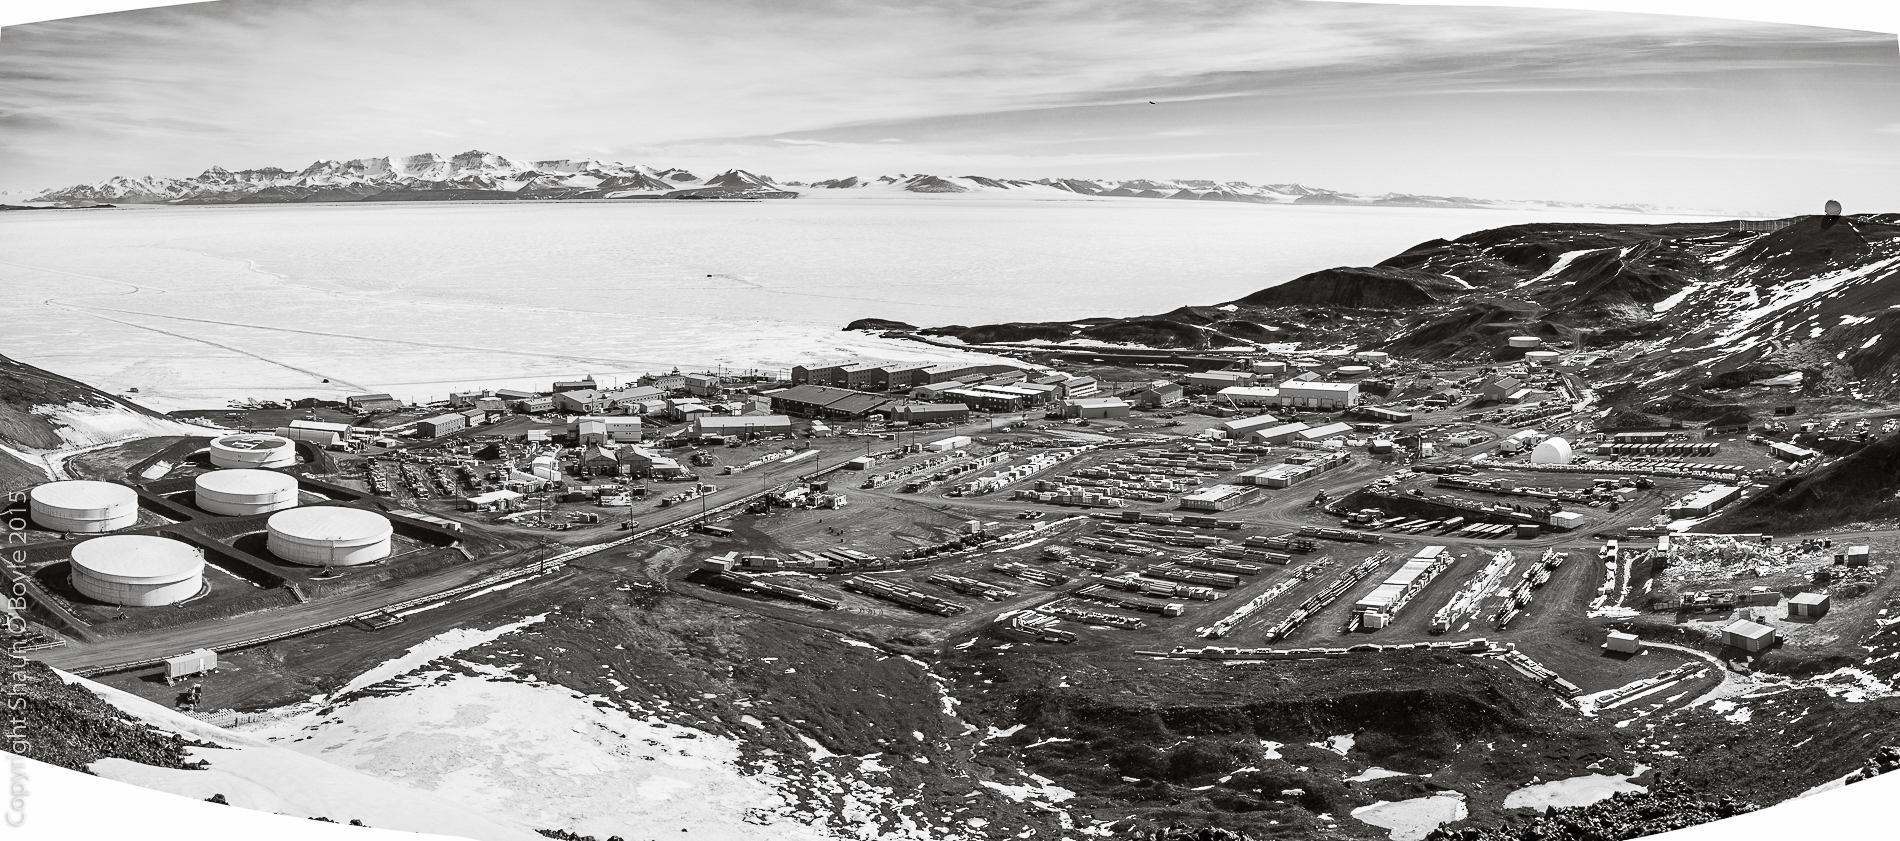 Overview of McMurdo Station from T-Site, showing the extent of the cargo storage yards